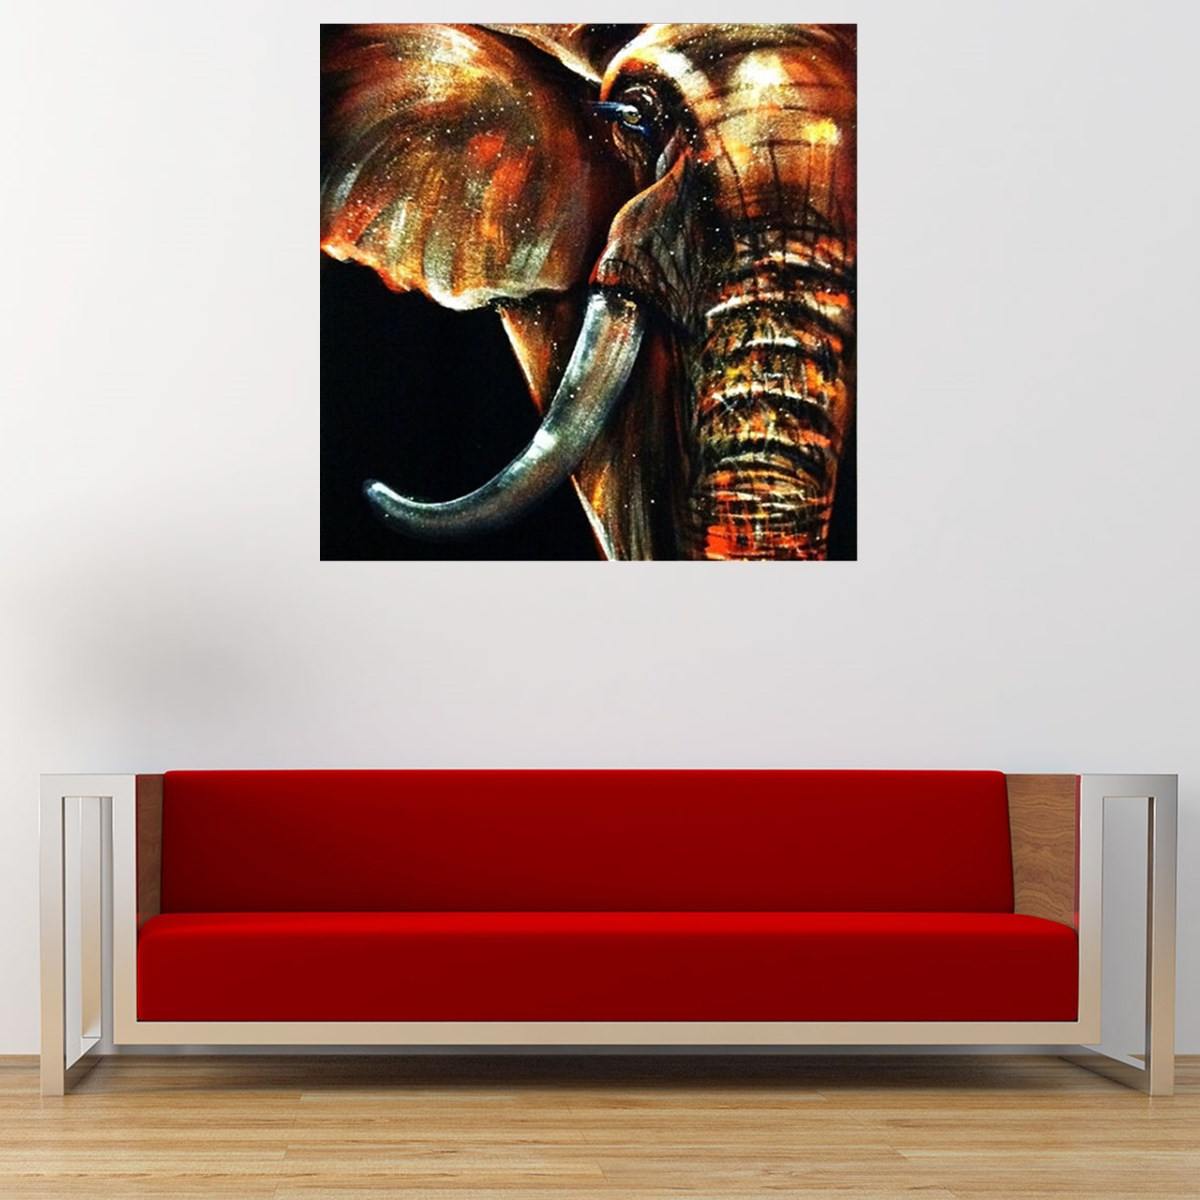 Best ideas about Elephant Wall Art . Save or Pin 50x50cm Modern Abstract Huge Elephant Wall Art Decor Oil Now.